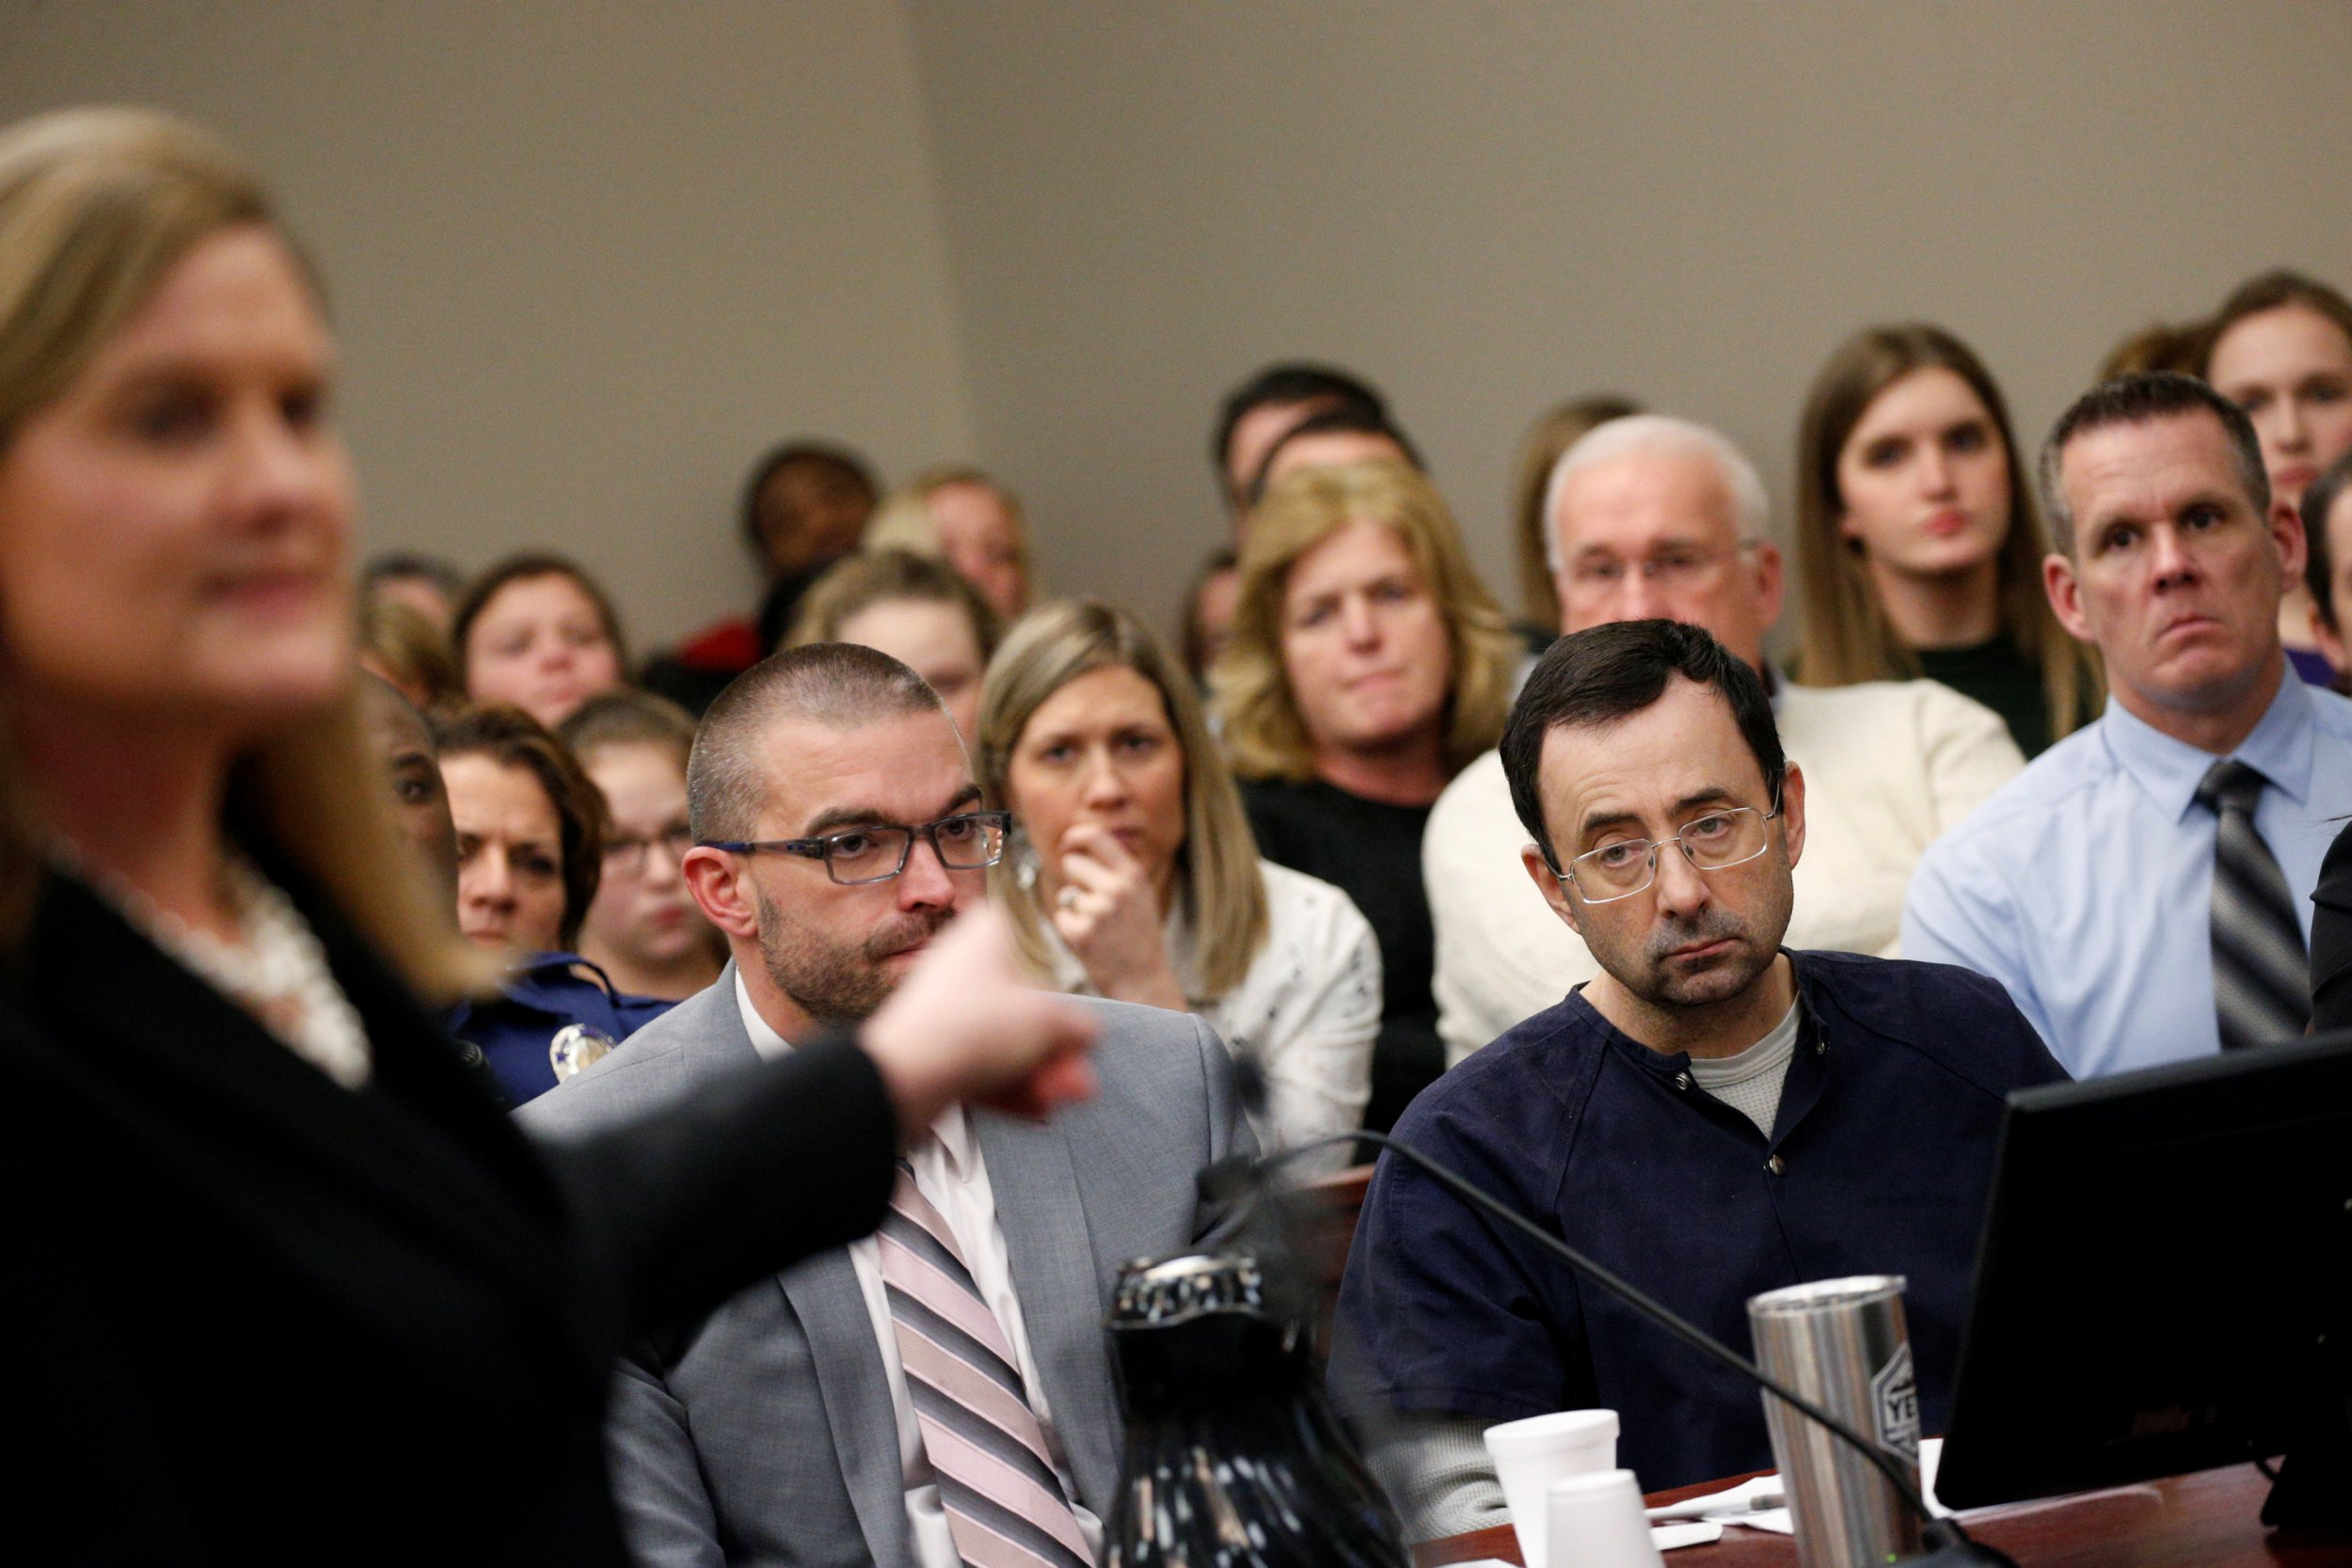 Courtroom erupts into laughter as Larry Nassar claims he's the one who's been 'manipulated'